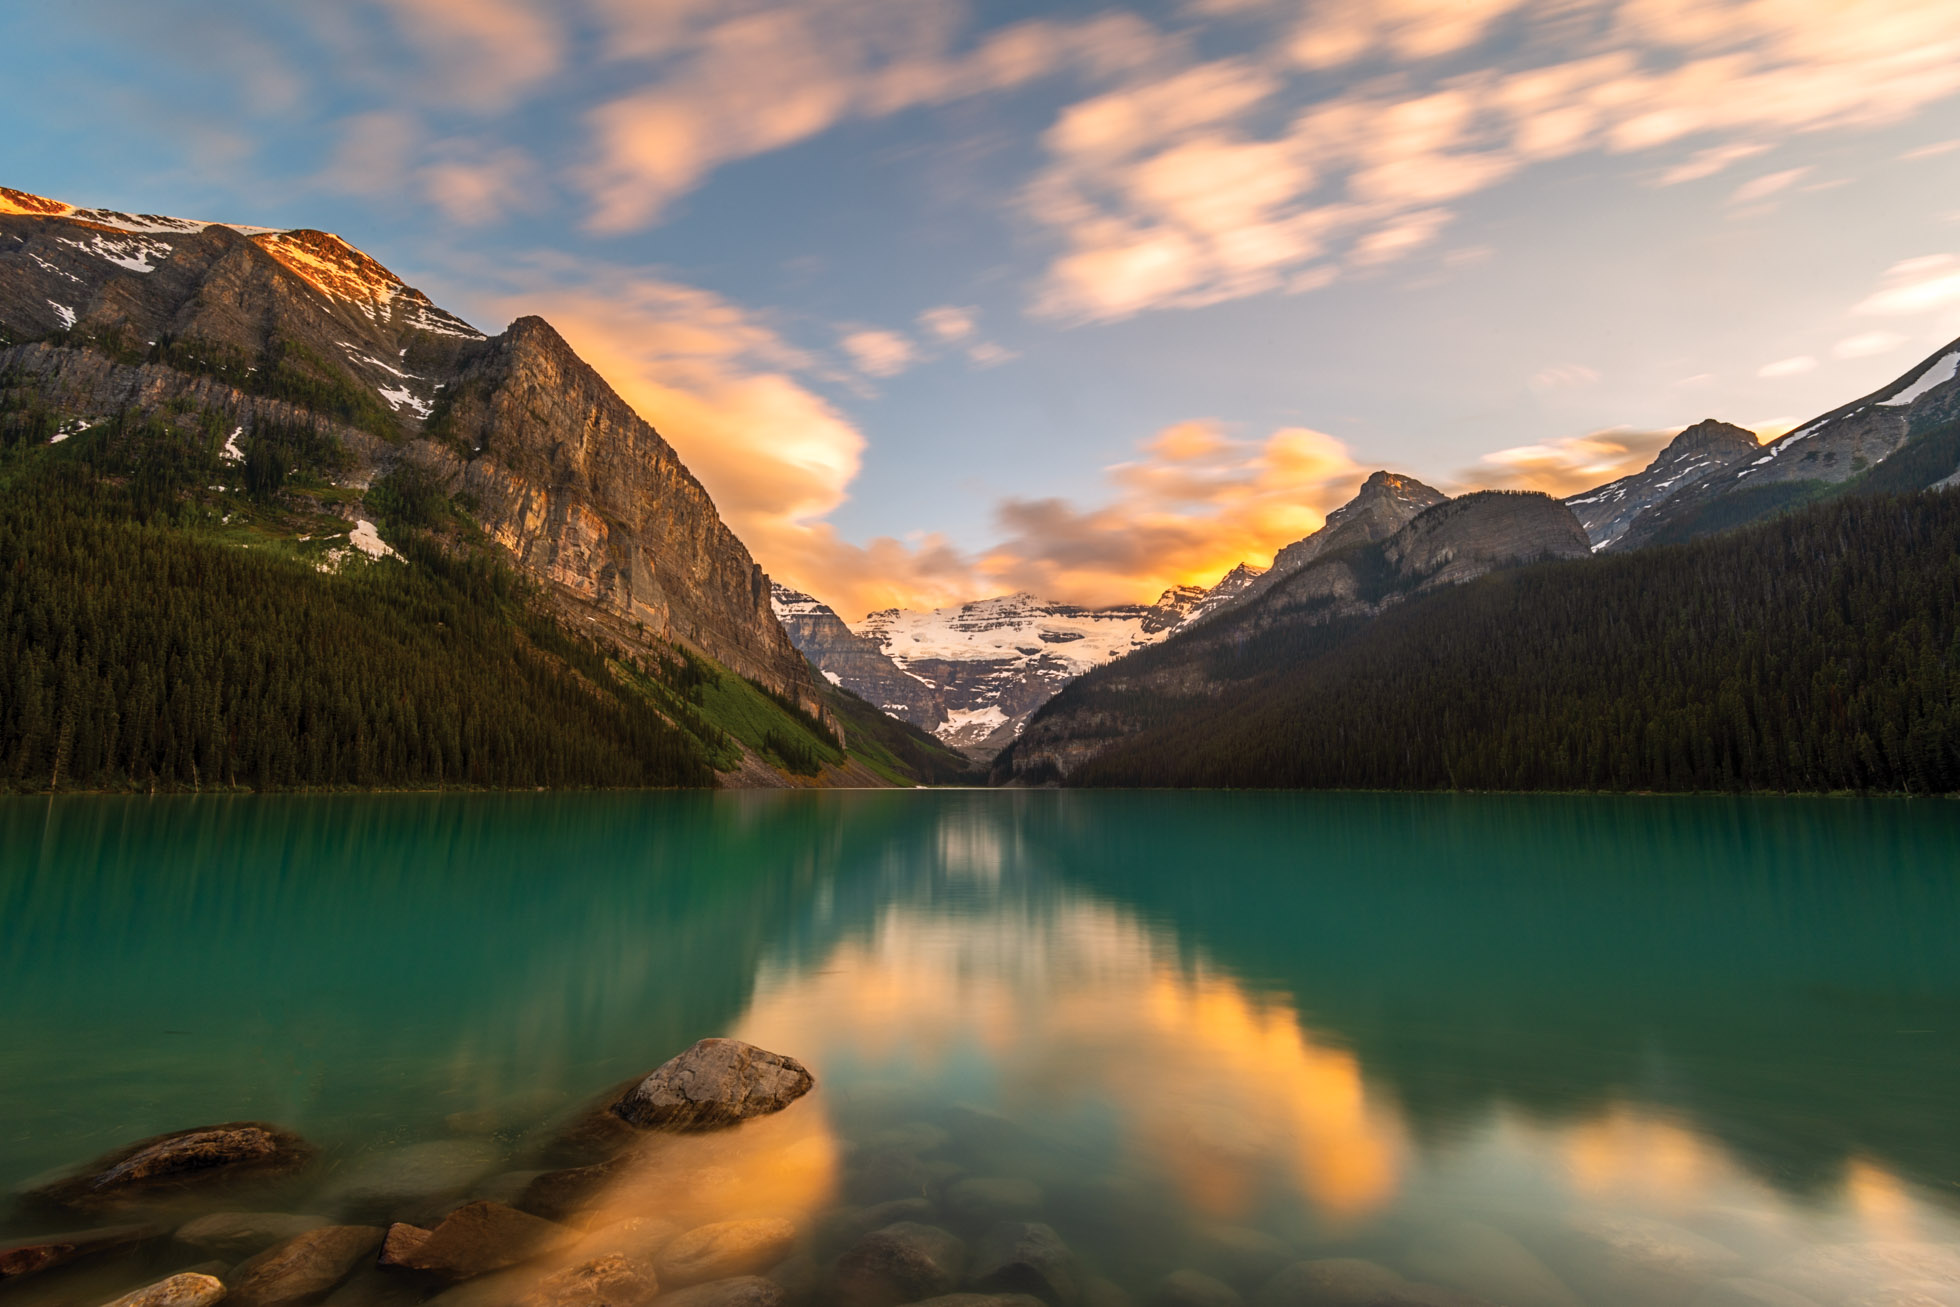 Long exposure of the clouds and water utilizing a 10 stop Neutral Density Filter at Lake Louise, Alberta, Canada